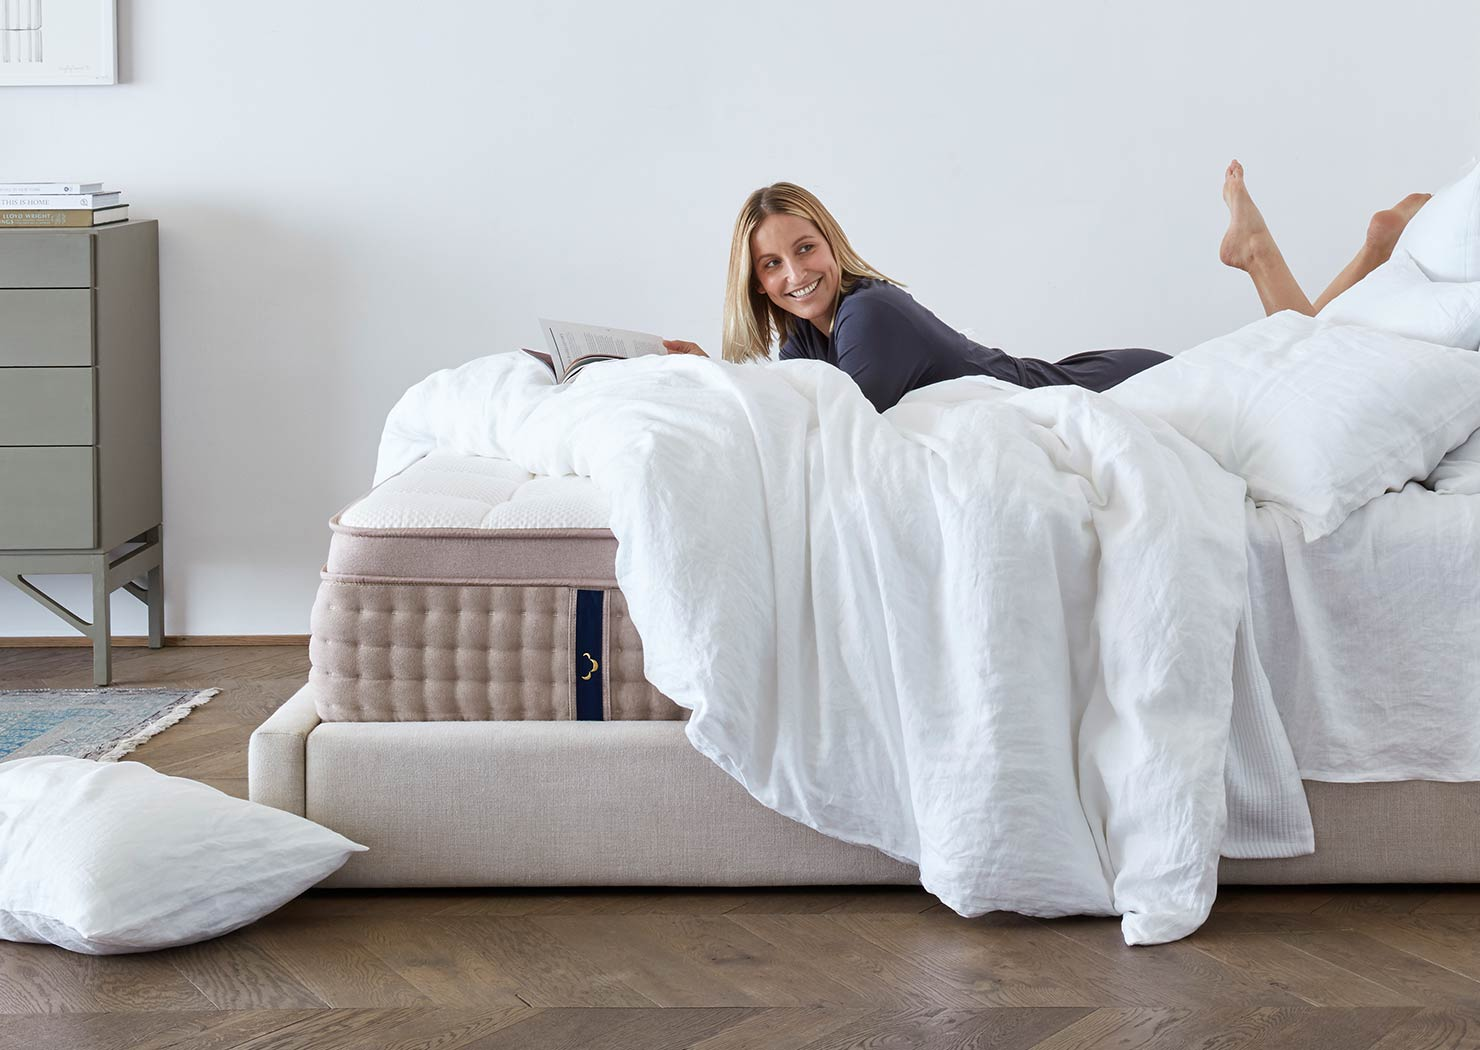 Woman laying on a DreamCloud mattress